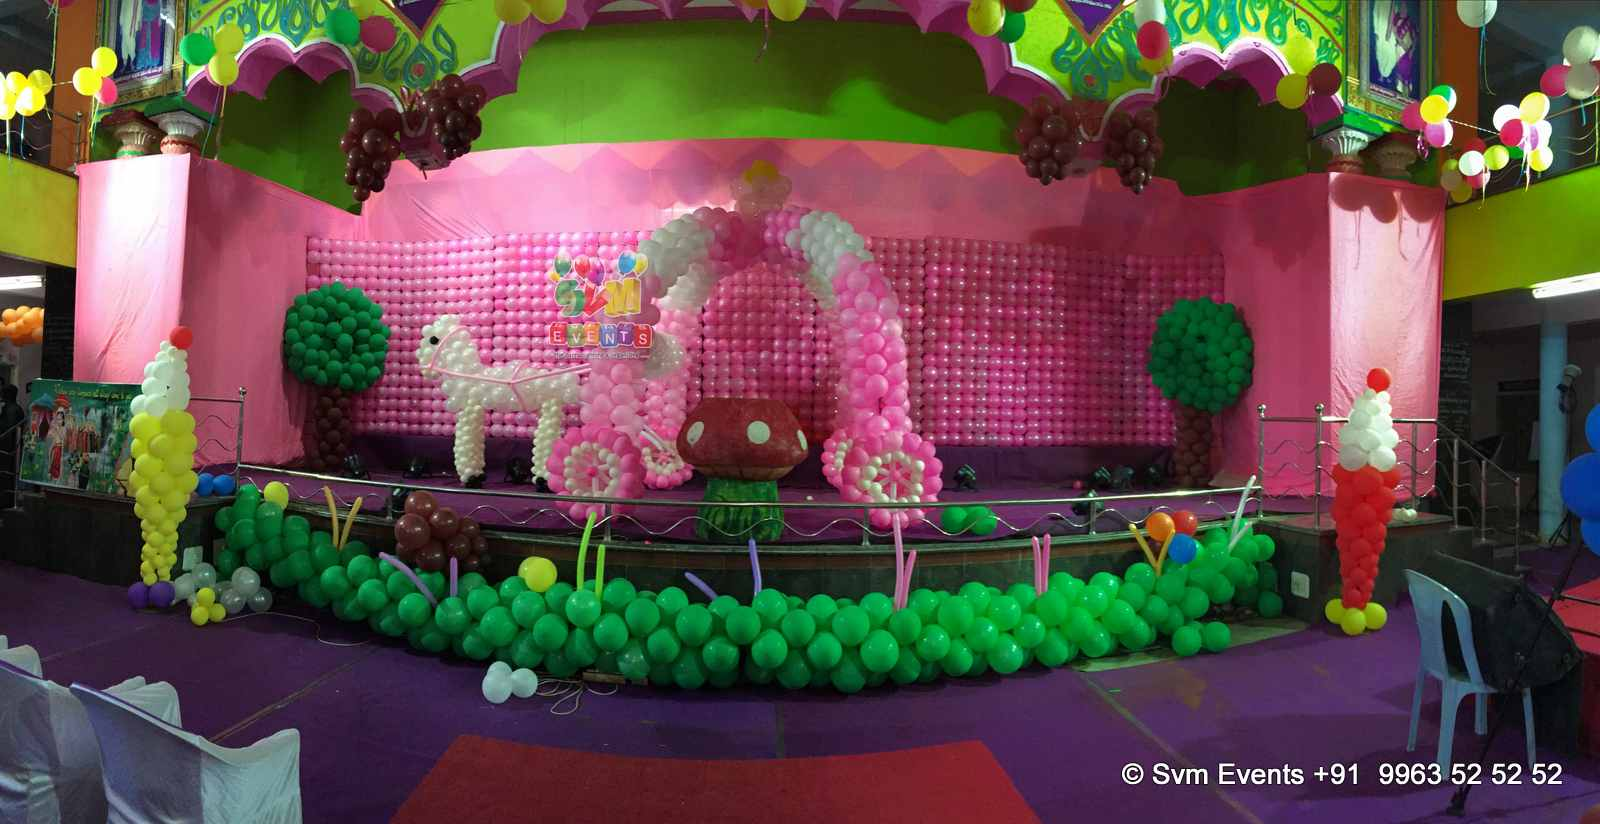 Svm events chariot theme for kids 1st birthday party and for Balloon decoration for 1st birthday